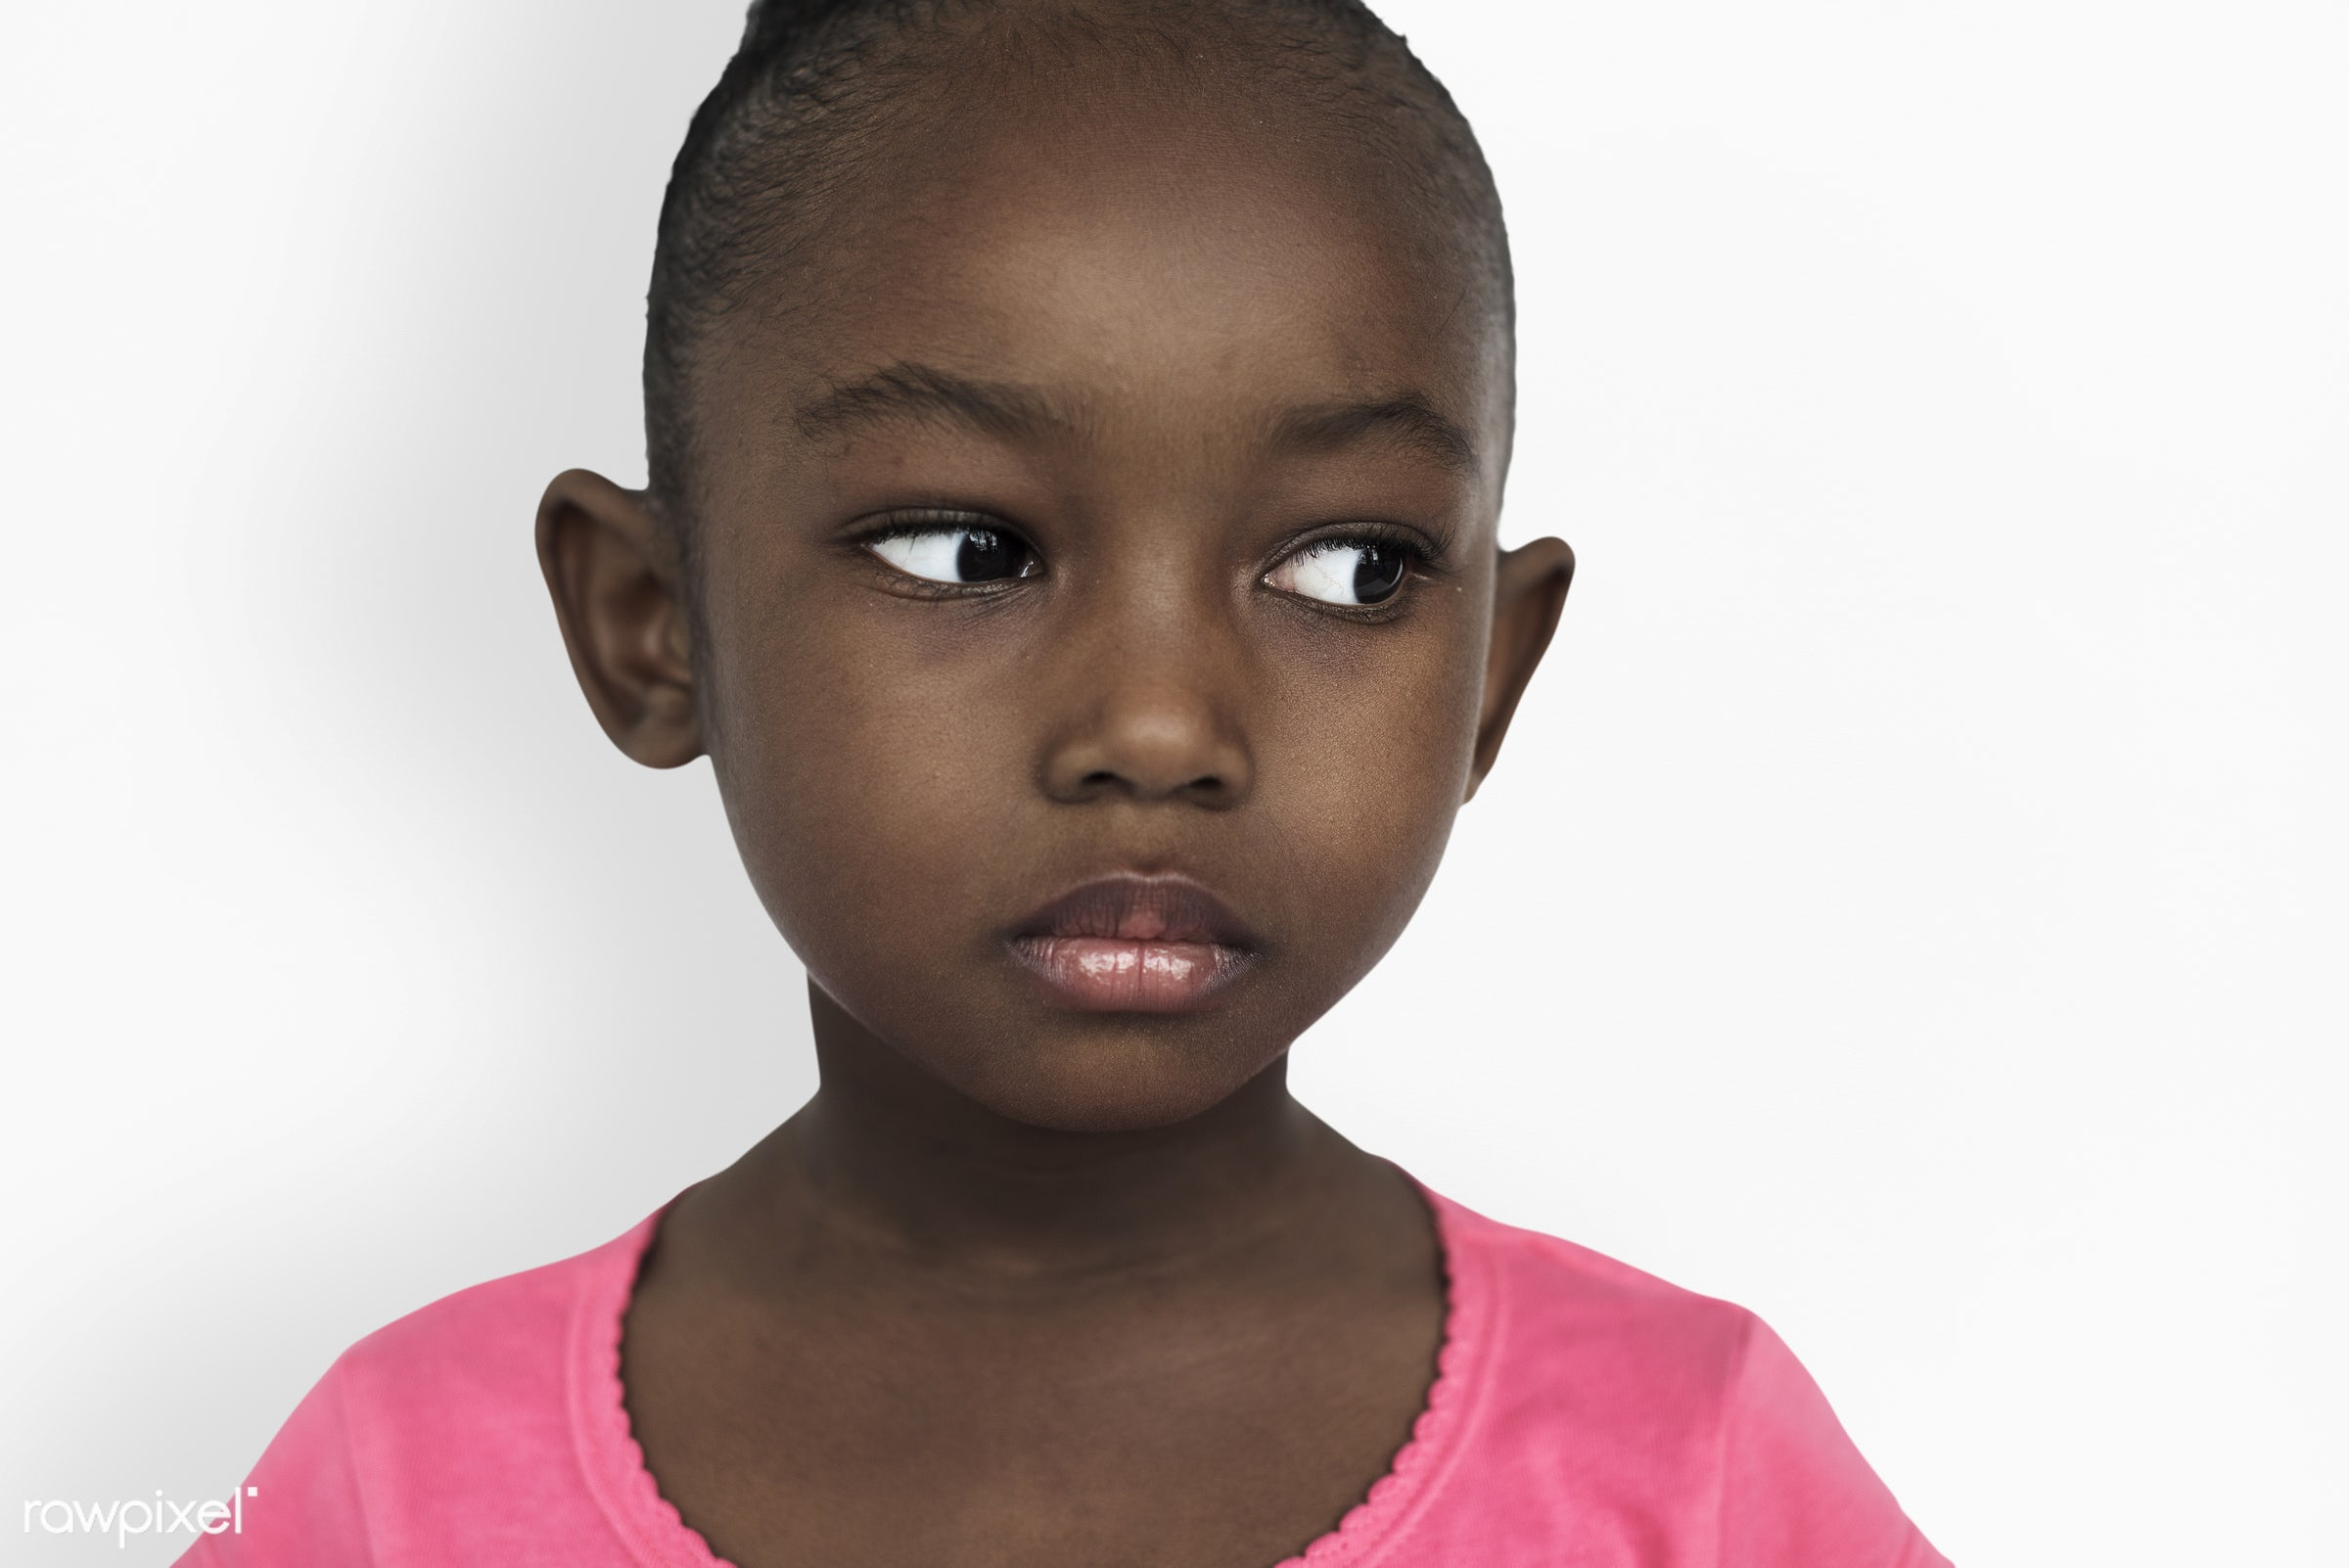 studio, expression, depress, face, person, african, isolated on white, sad, boredom, bored, beauty, cute, pretty, people,...